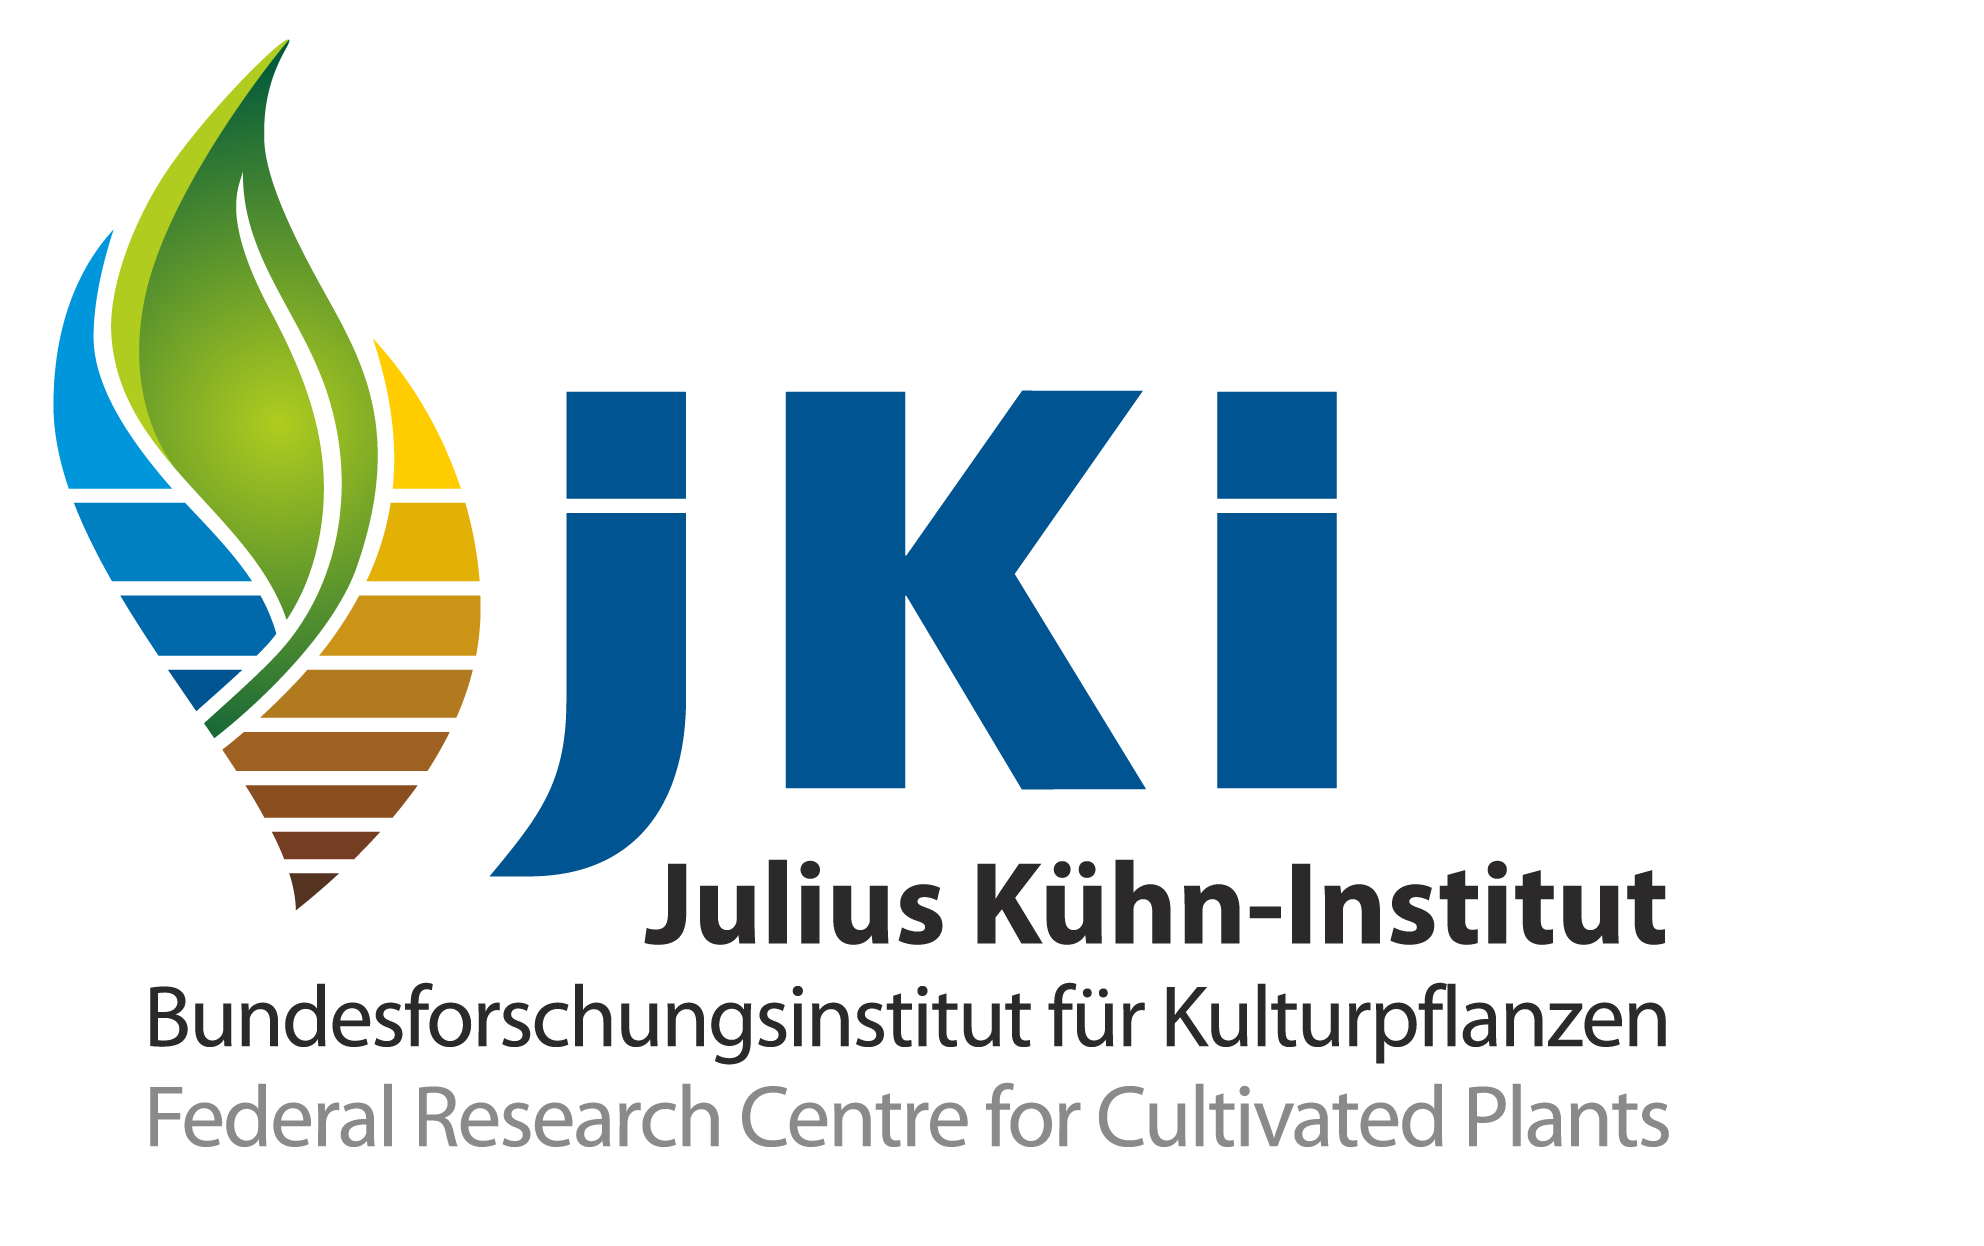 Julius Kuehn Institute logo